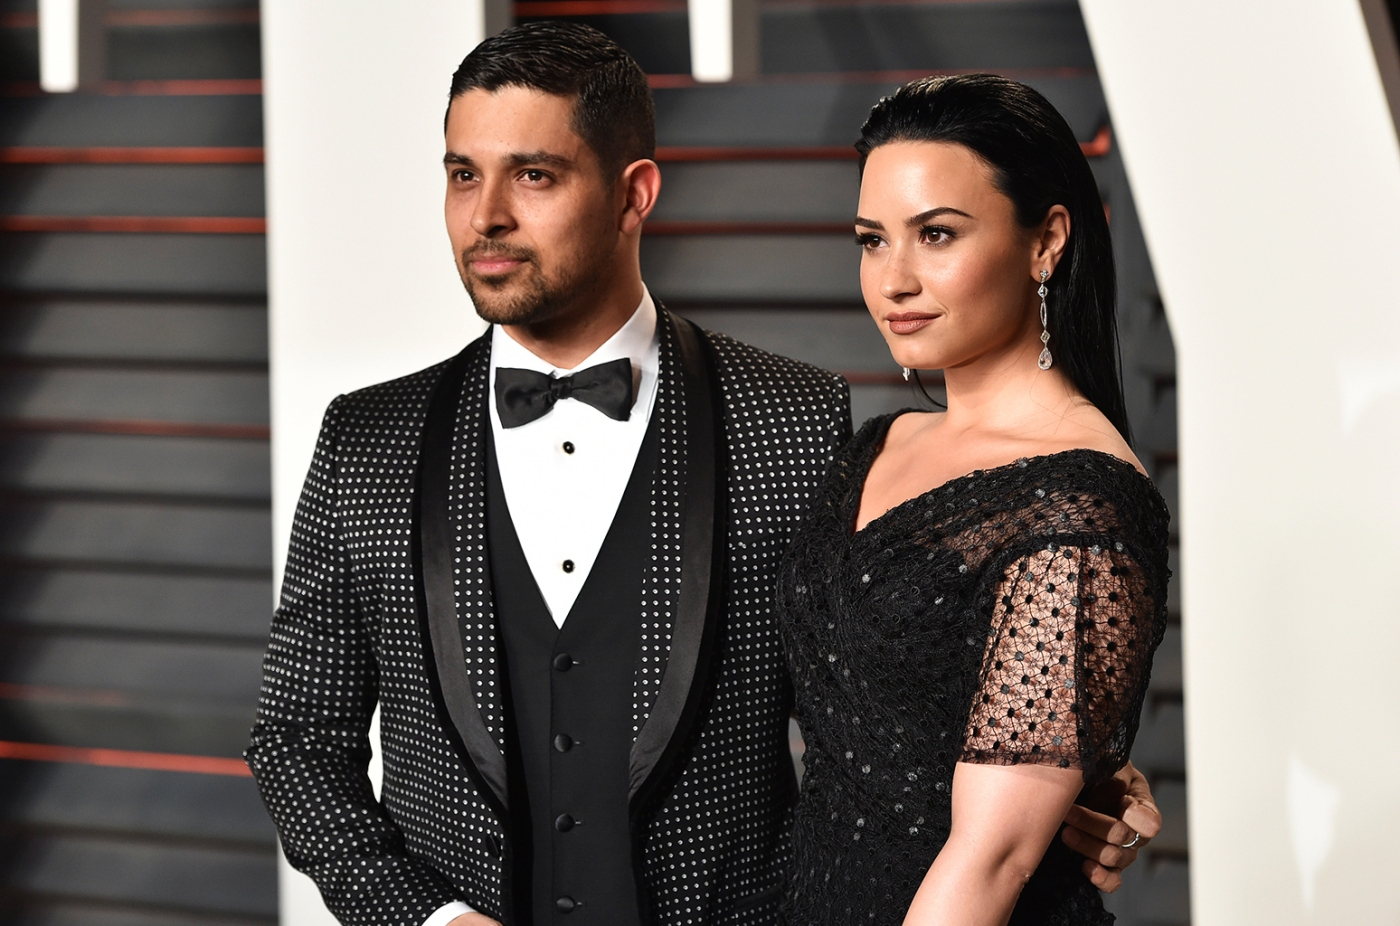 Wilmer-Valderrama-Demi-Lovato-Vanity-Fair-party-2016-billboard-1548.jpg